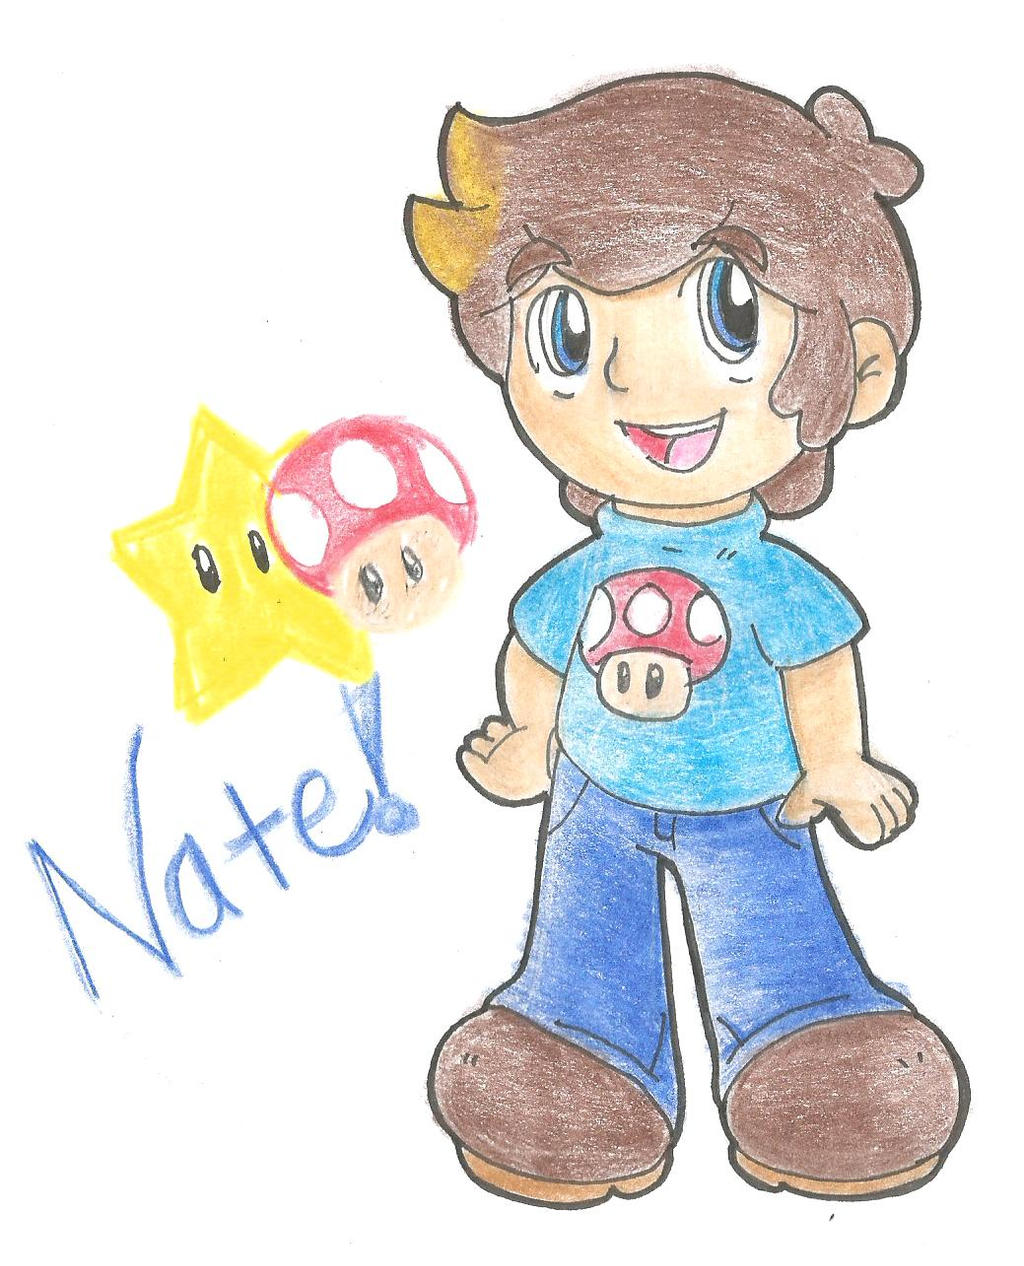 New OC: Nate by goldenwinterdaisies